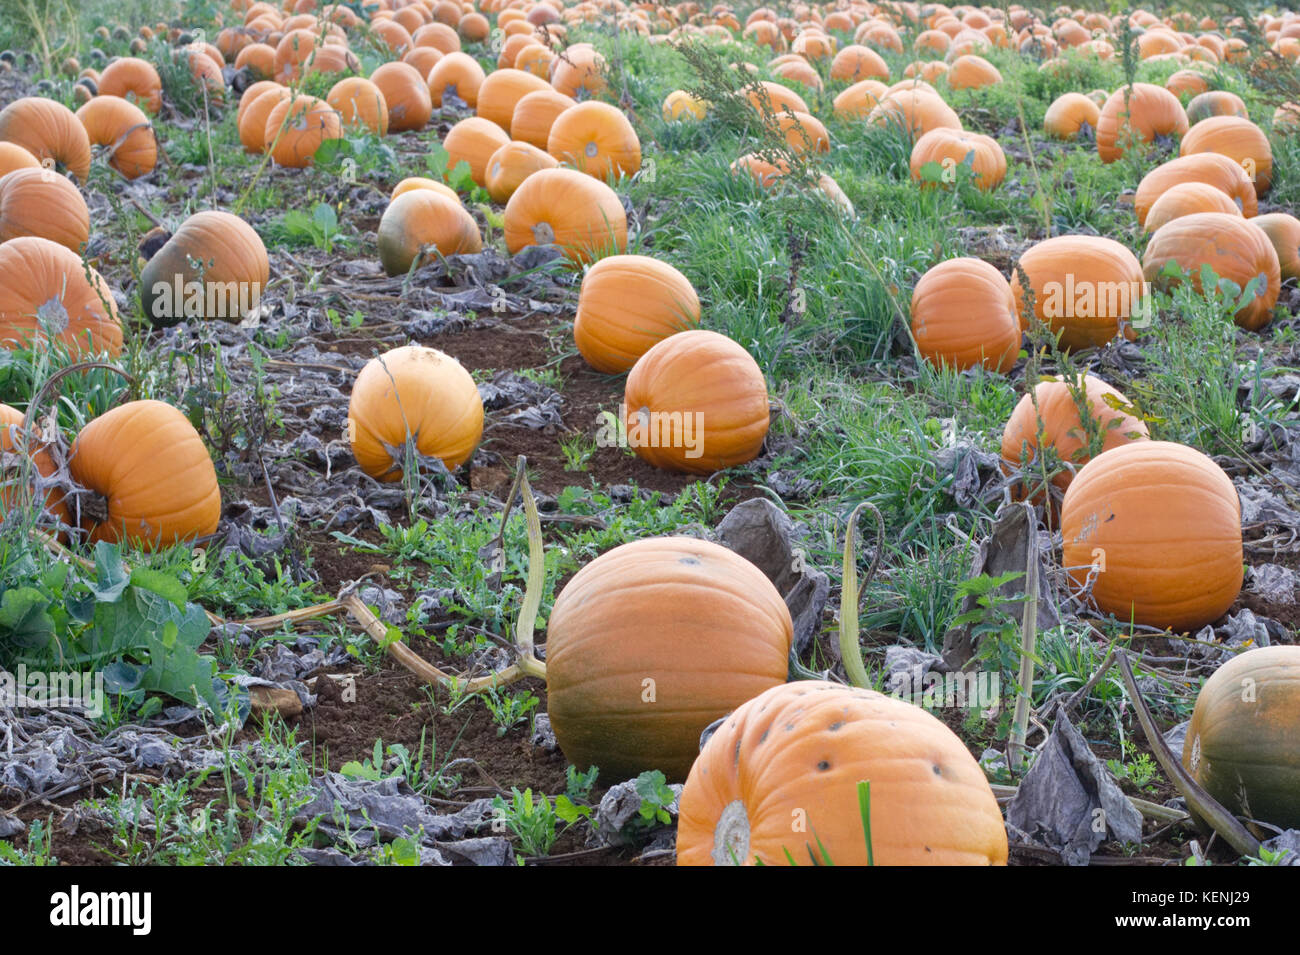 Pumpkins growing in a field for Hallween - Stock Image